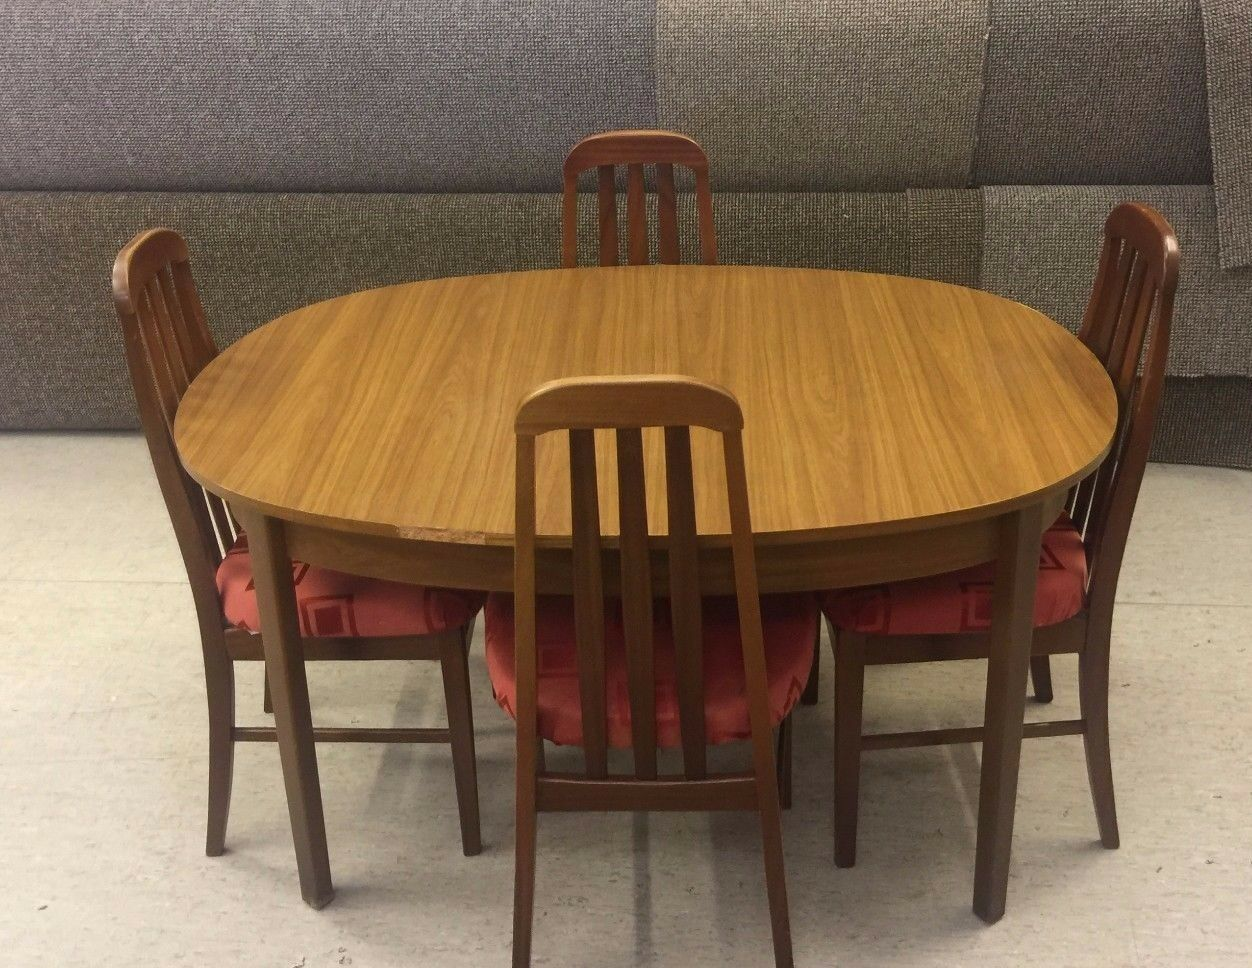 A vintage oval teak wood extending kitchen diner table 4 padded chairs picclick uk - Oval kitchen table sets ...